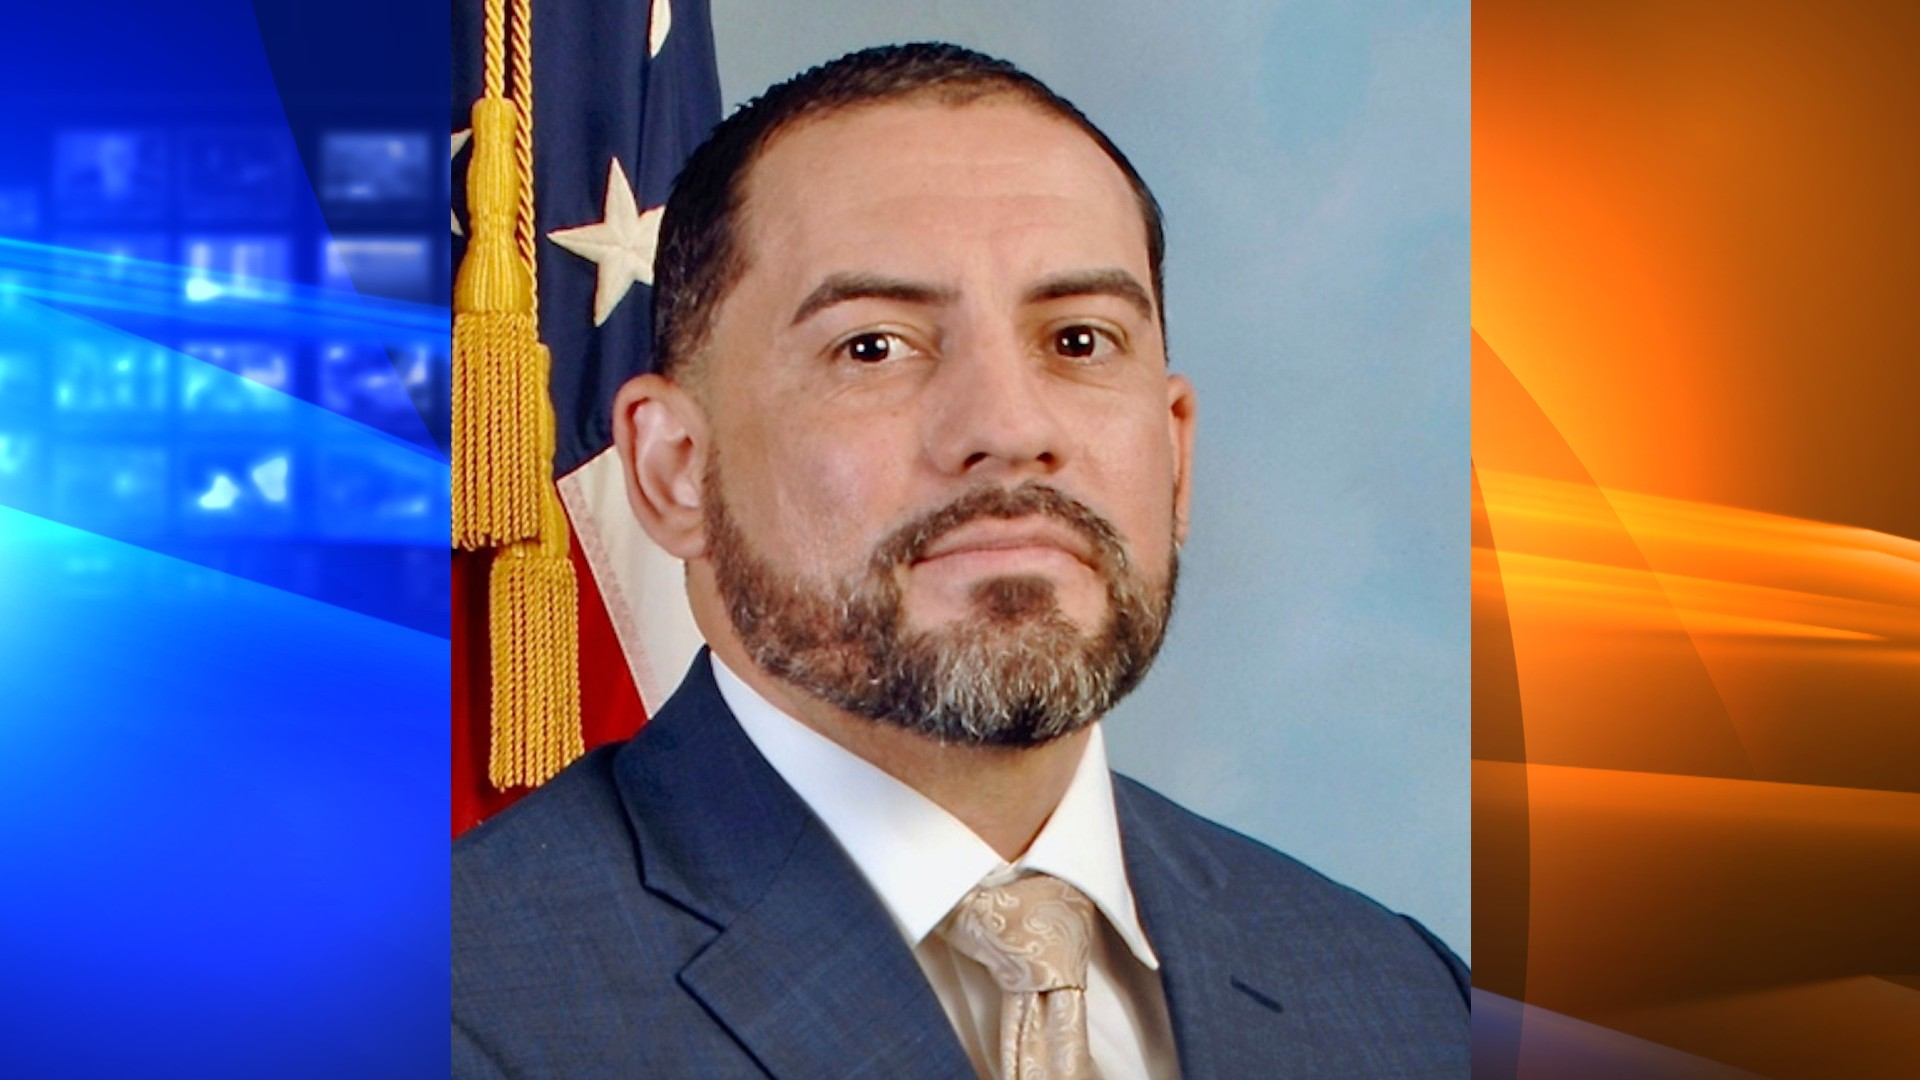 This image provided by defense attorney Robert Bonsib of MarcusBonsib, LLC, shows FBI agent Eduardo Valdivia, who has been charged with attempted murder in the off-duty shooting of another man on a Metro subway train last year in a Maryland suburb of Washington, D.C., according to court records unsealed Tuesday, June 1, 2021. Valdivia turned himself in to local authorities at a county jail Tuesday morning, according to Chief Deputy Maxwell Uy of the Montgomery County Sheriff's Office. (MarcusBonsib, LLC via AP)